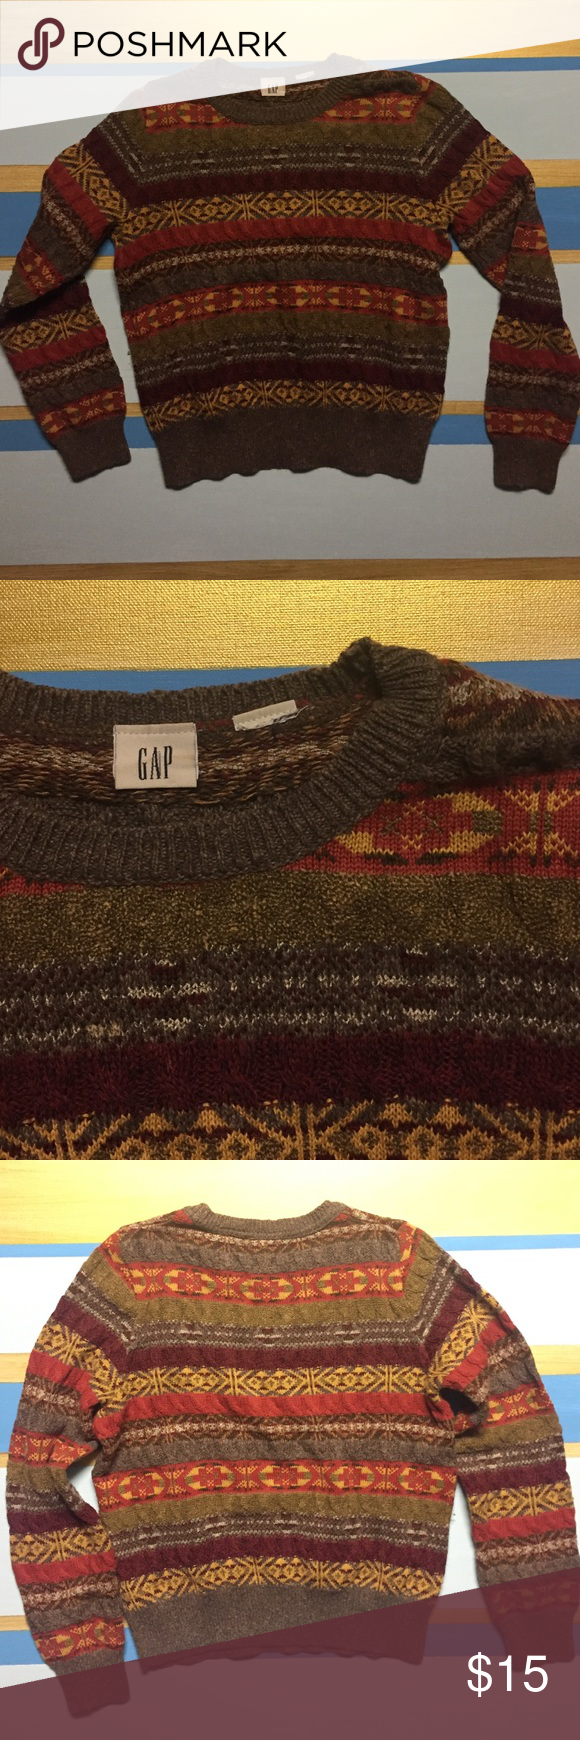 """GAP Sweater Fall colored GAP sweater, nice thick material. Does not have size tag. Assuming S or XS. 21"""" from shoulder to hem, 17.5"""" at widest point GAP Tops Sweatshirts & Hoodies"""